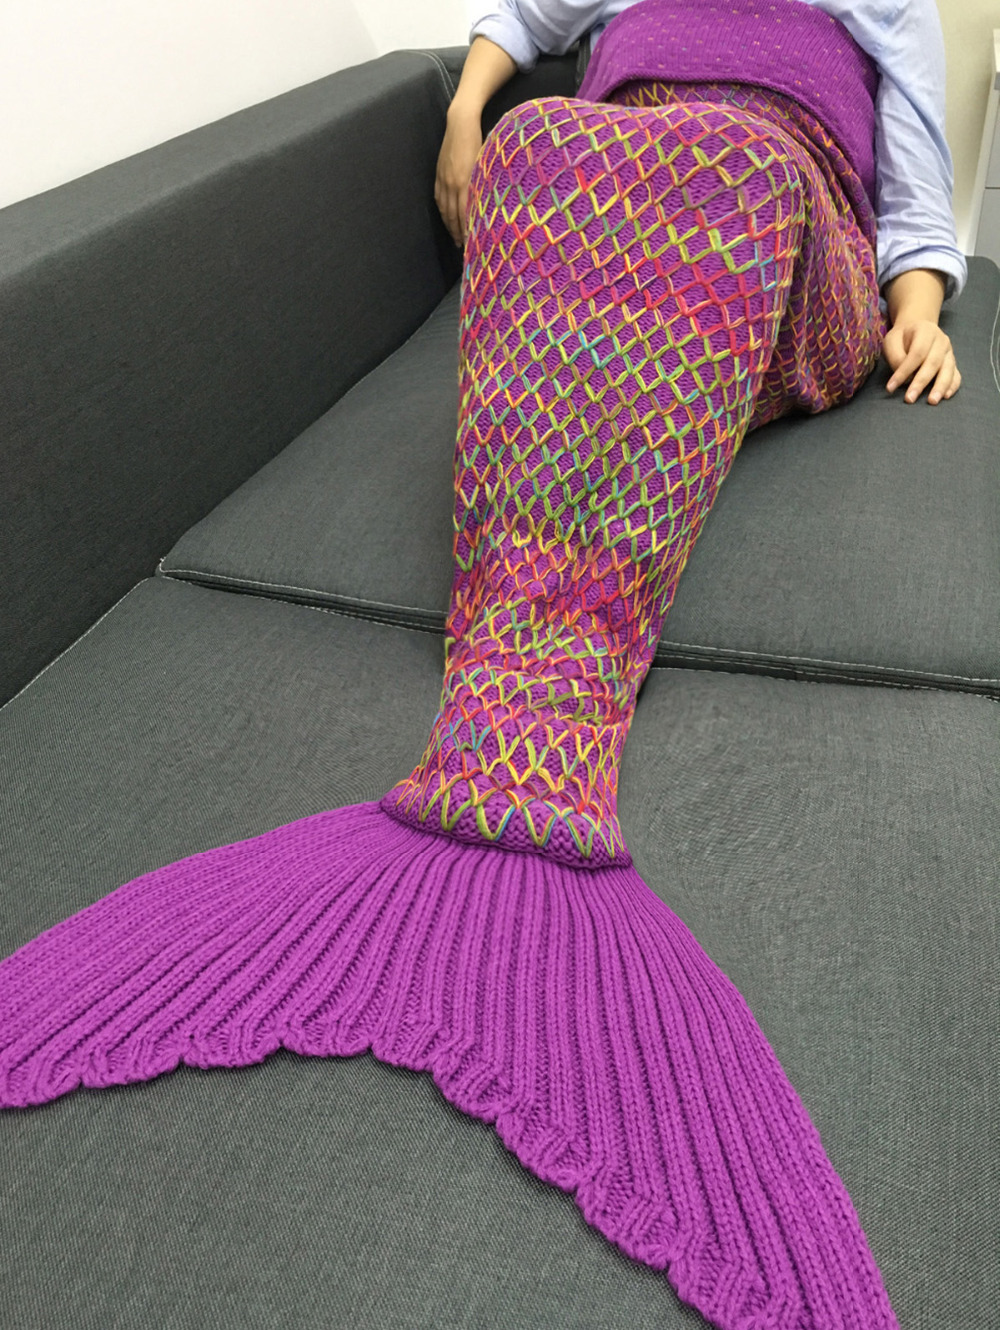 Knitting Pattern Mermaid Tail Blanket : 2017 Xmas Christmas Gift Rainbow Mermaid Blanket Pattern Crochet Mermaid Tail...